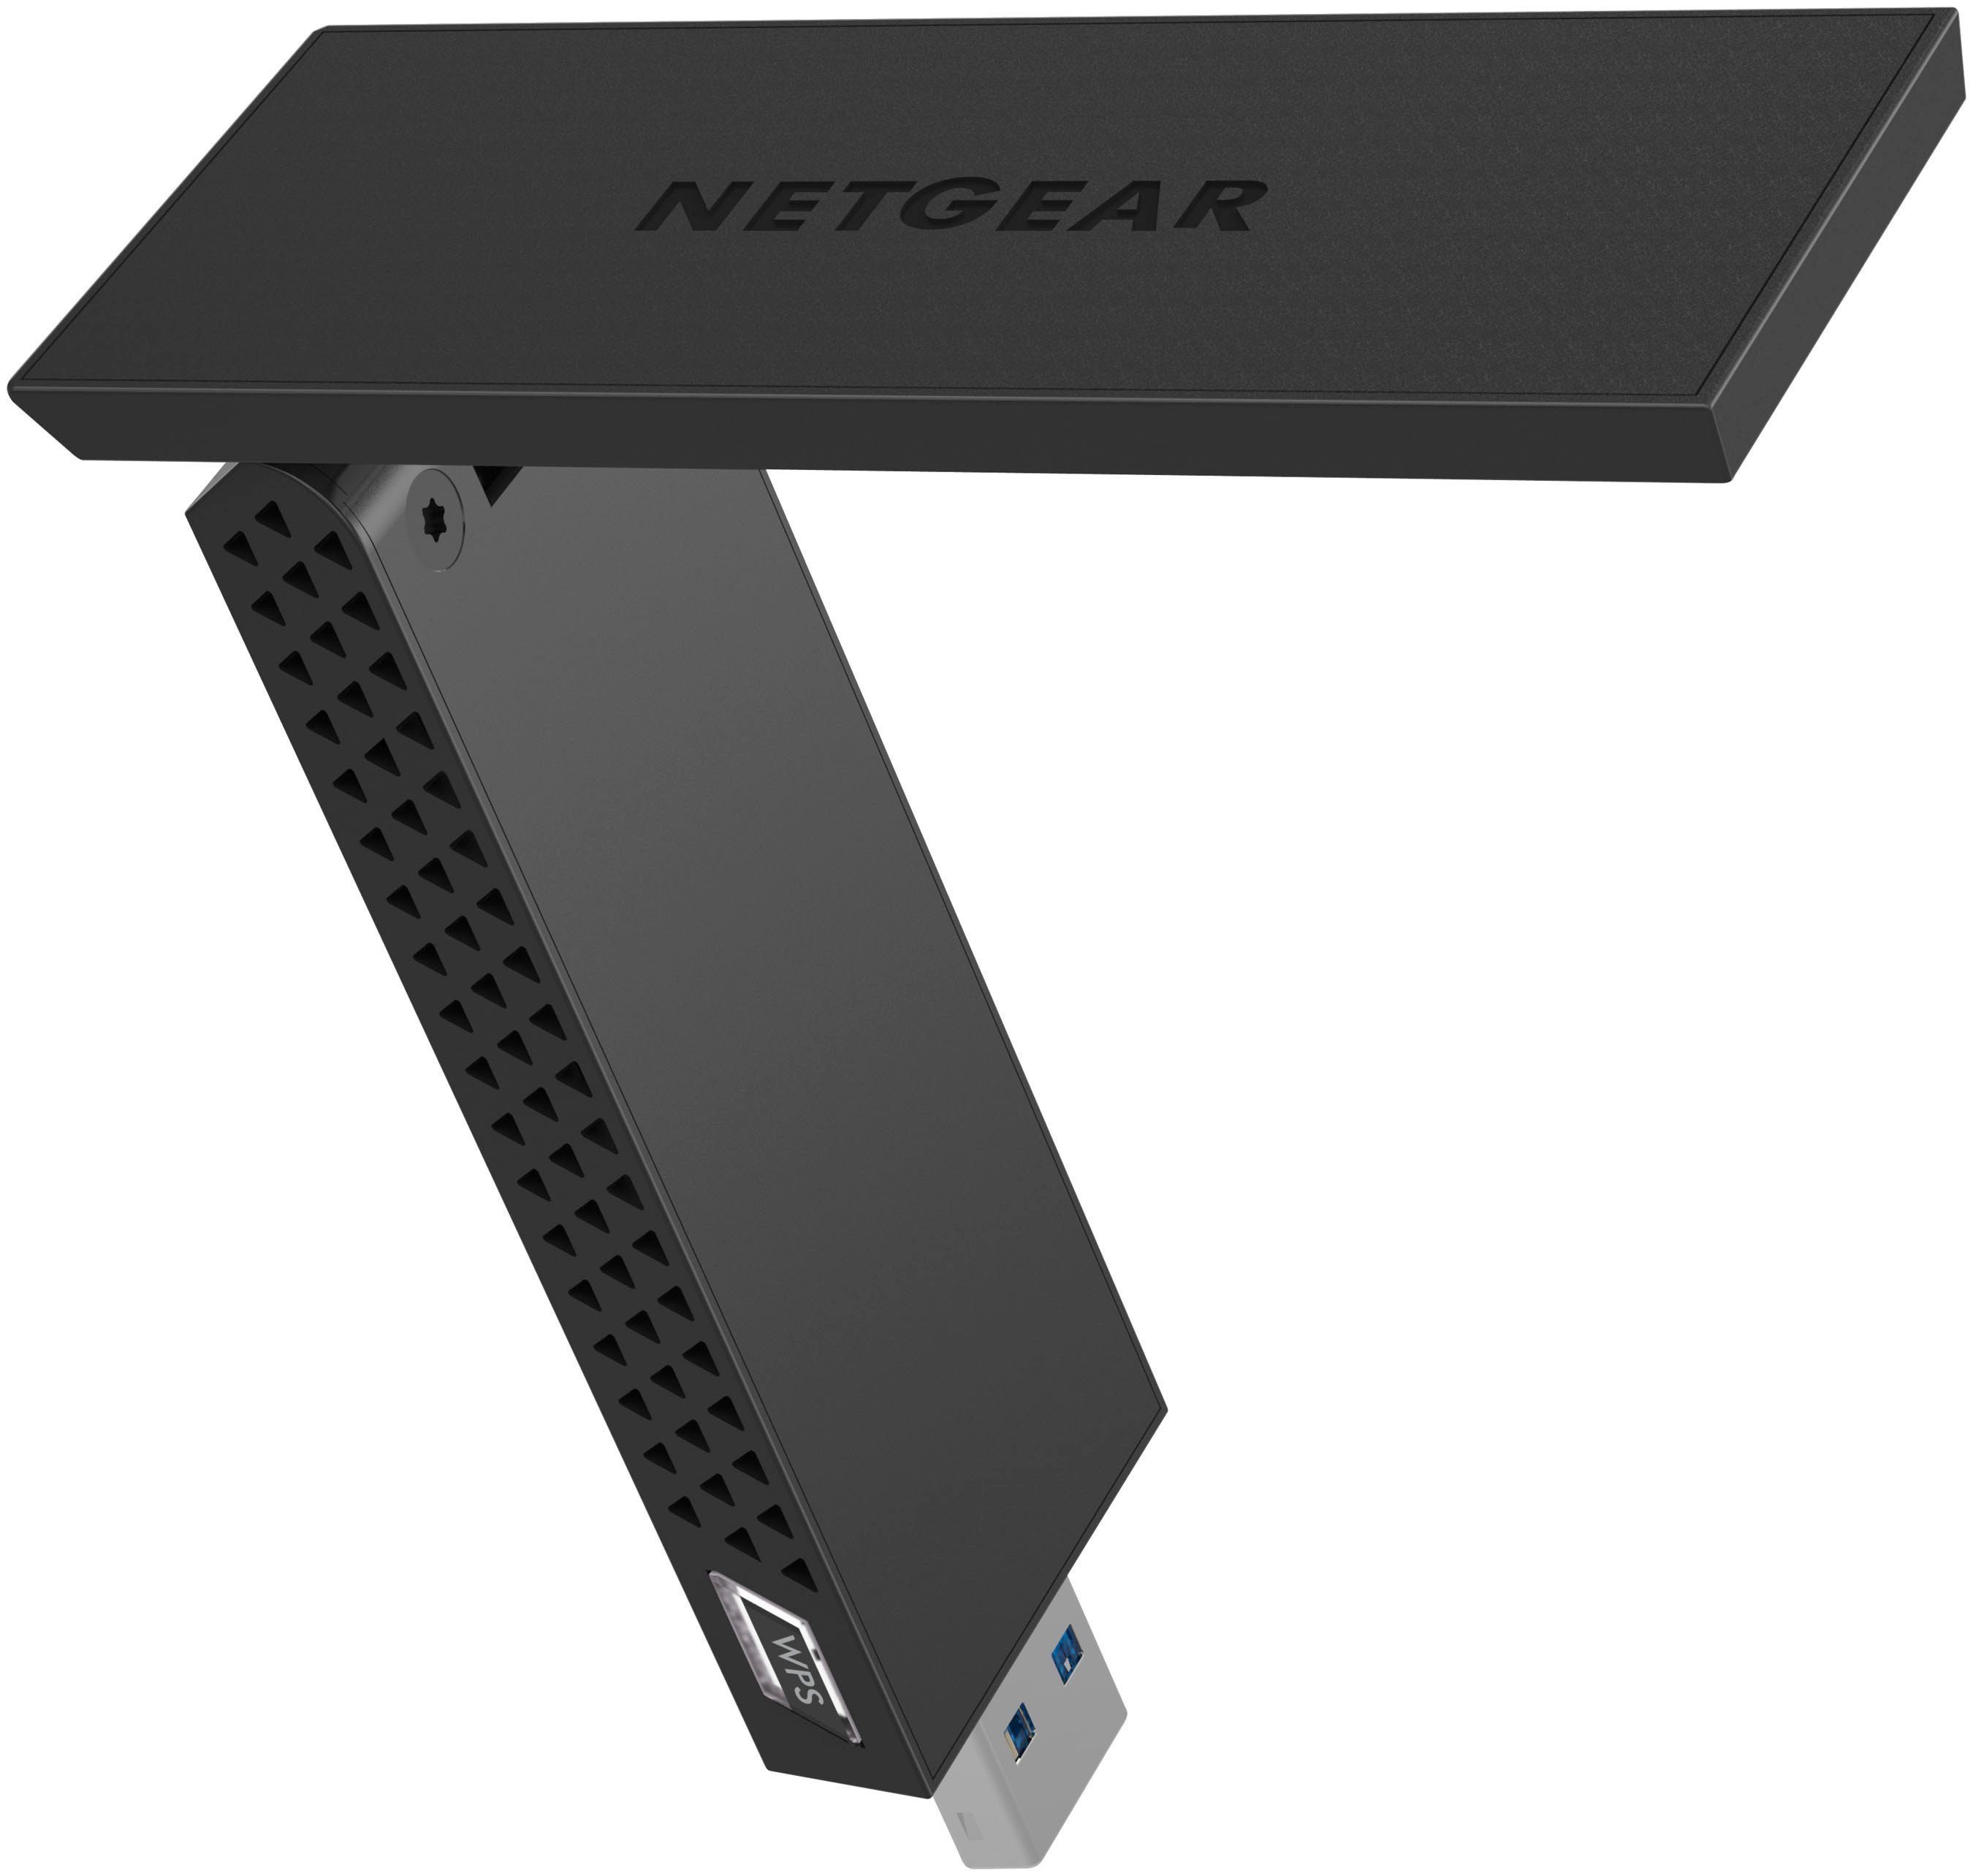 Netgear WLAN Adapter »AC1200-High-Gain-WL-USB-Adapt«